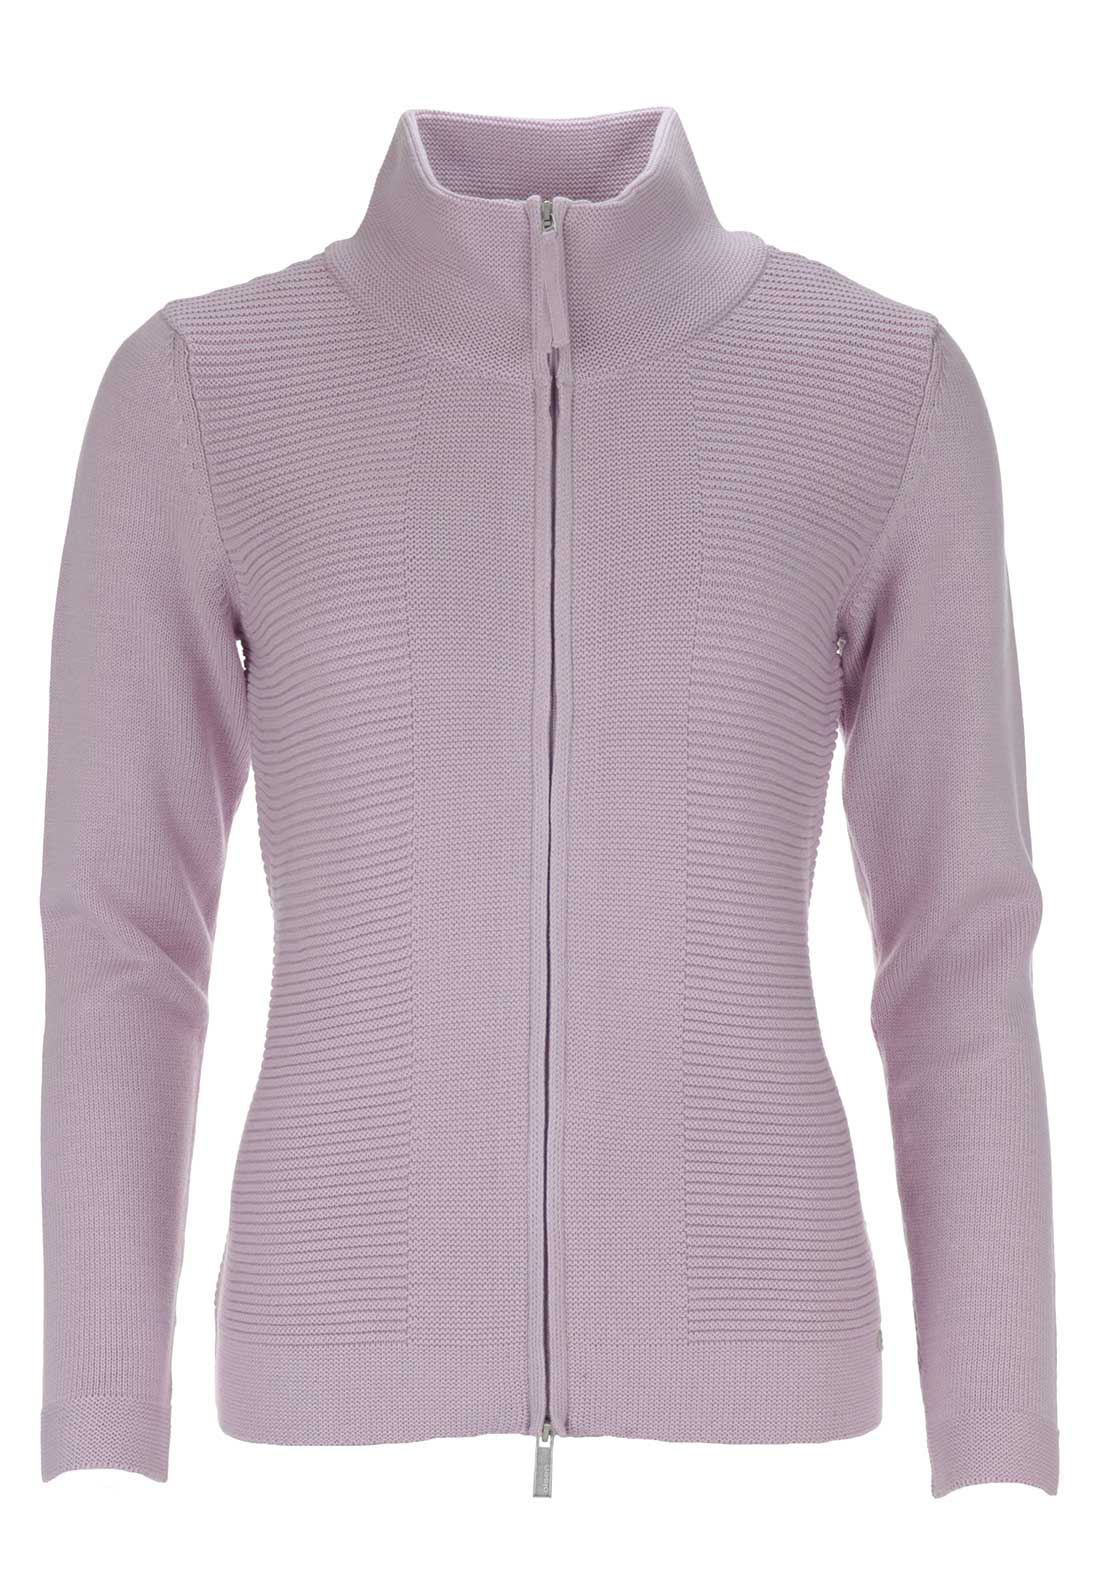 Olsen Chunky Knit High Neck Cardigan, Pink